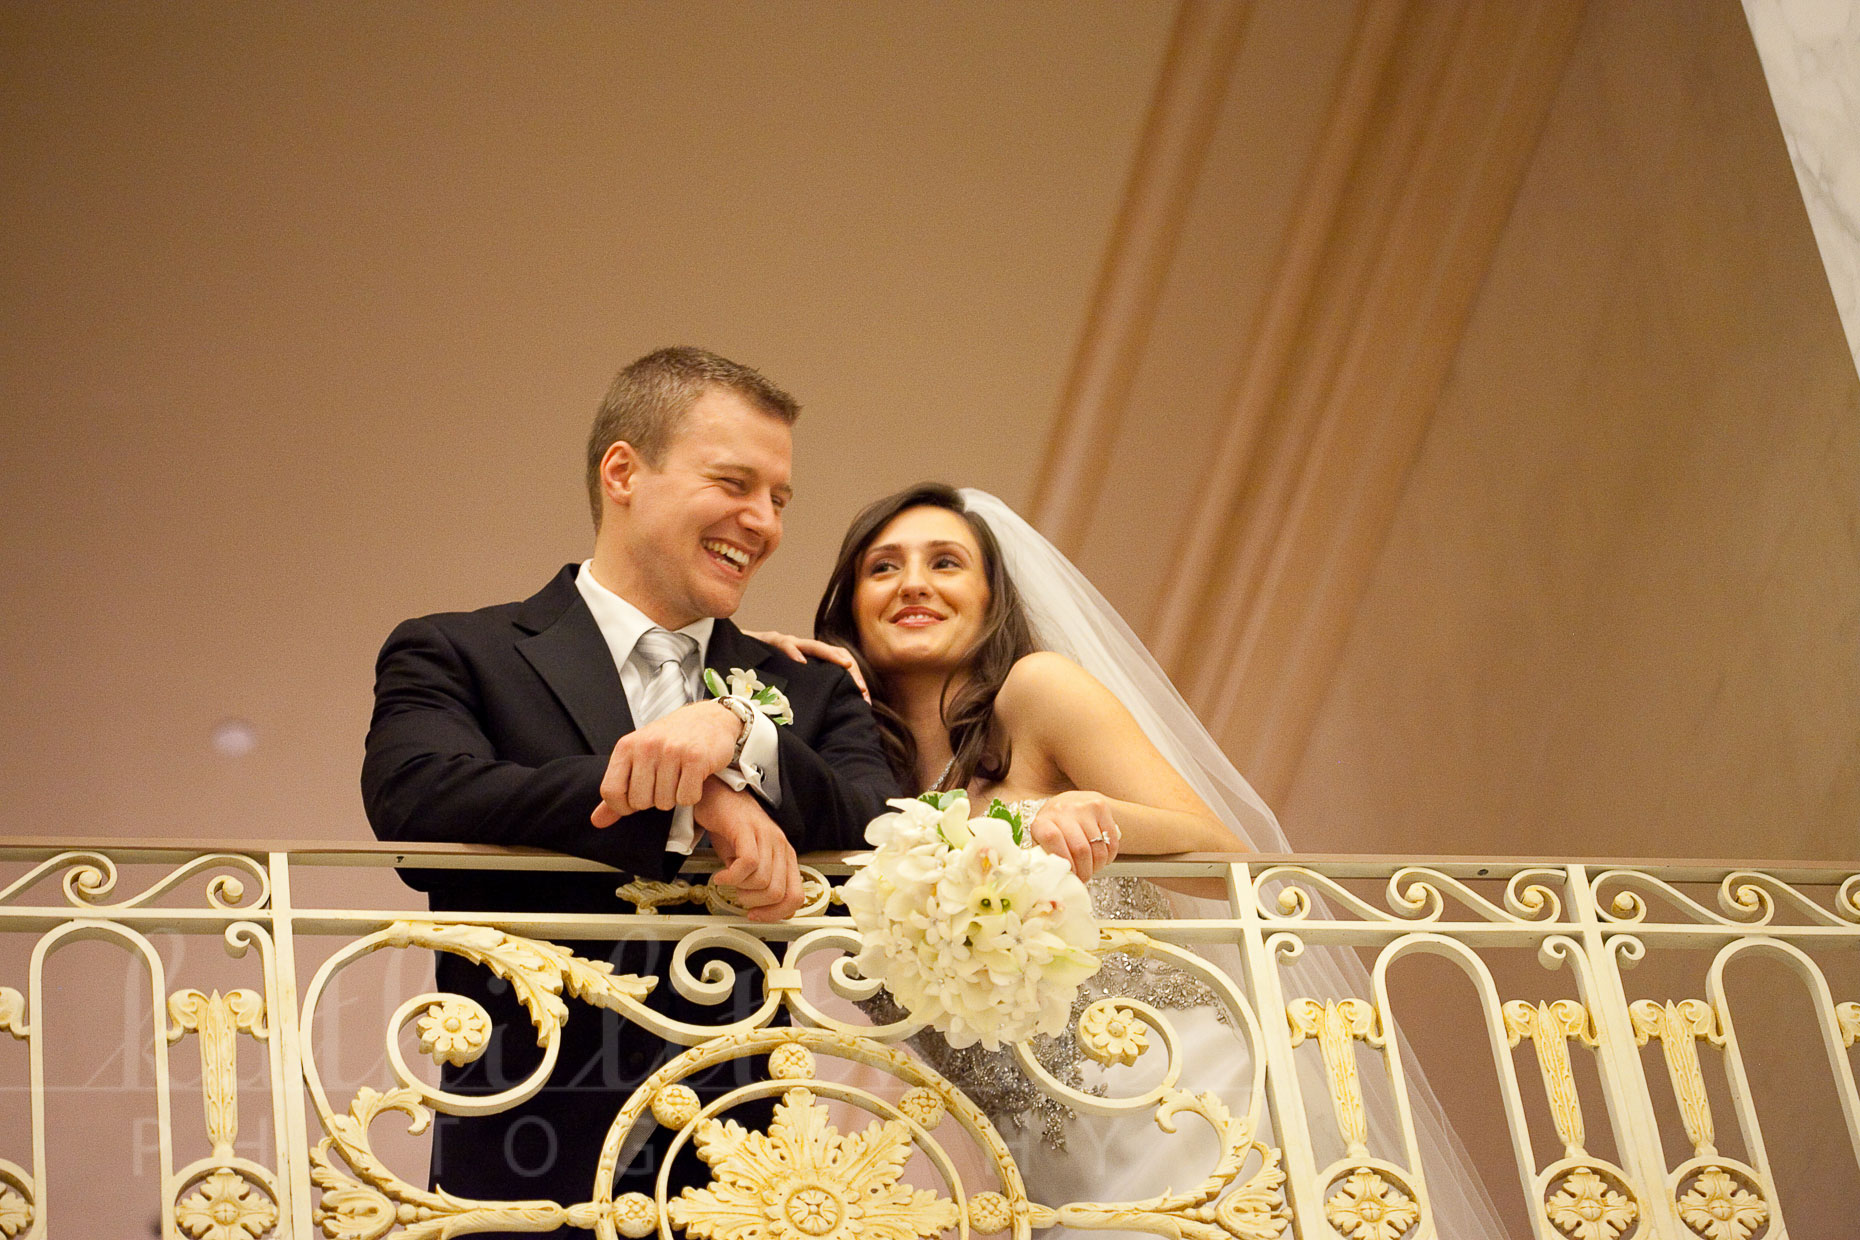 Kathi_Littwin_Photography_Plaza_NYC_Wedding-2027